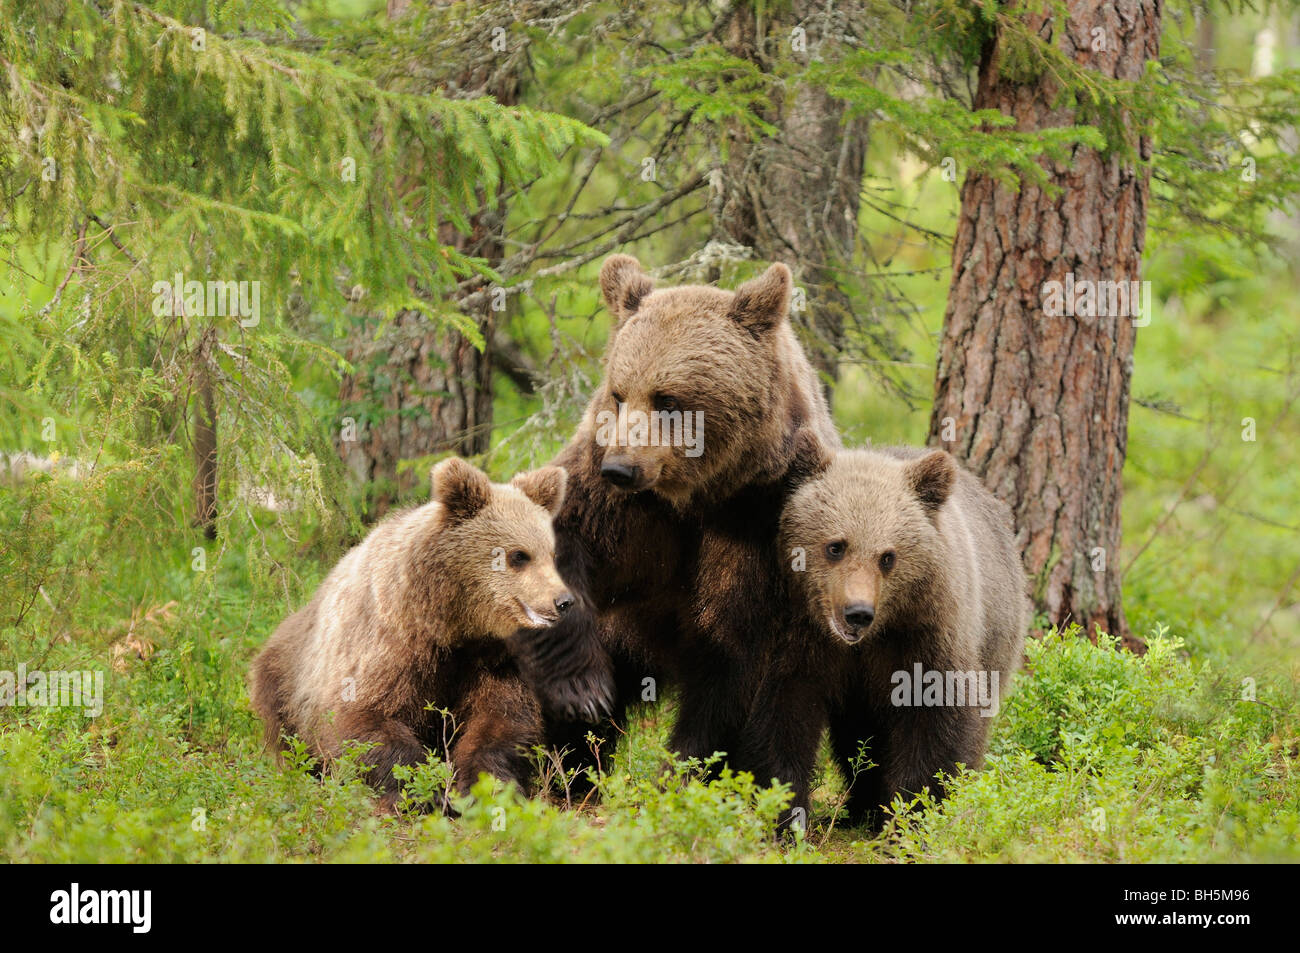 European Brown Bear Ursos arctos Mother and 1 year old  cubs Photographed in  the wild Finland - Stock Image